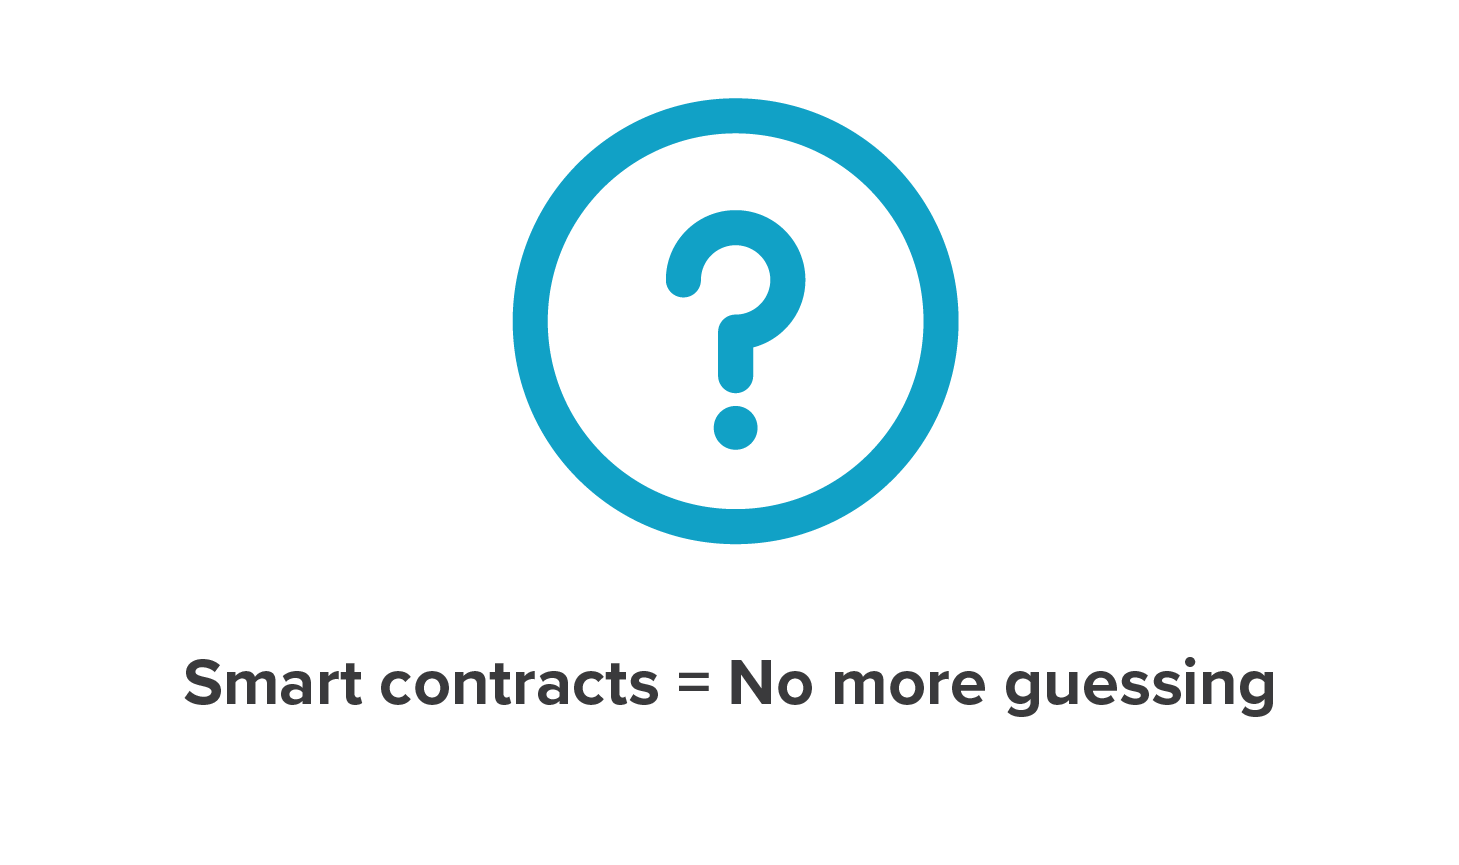 real safe always app - smart contracts